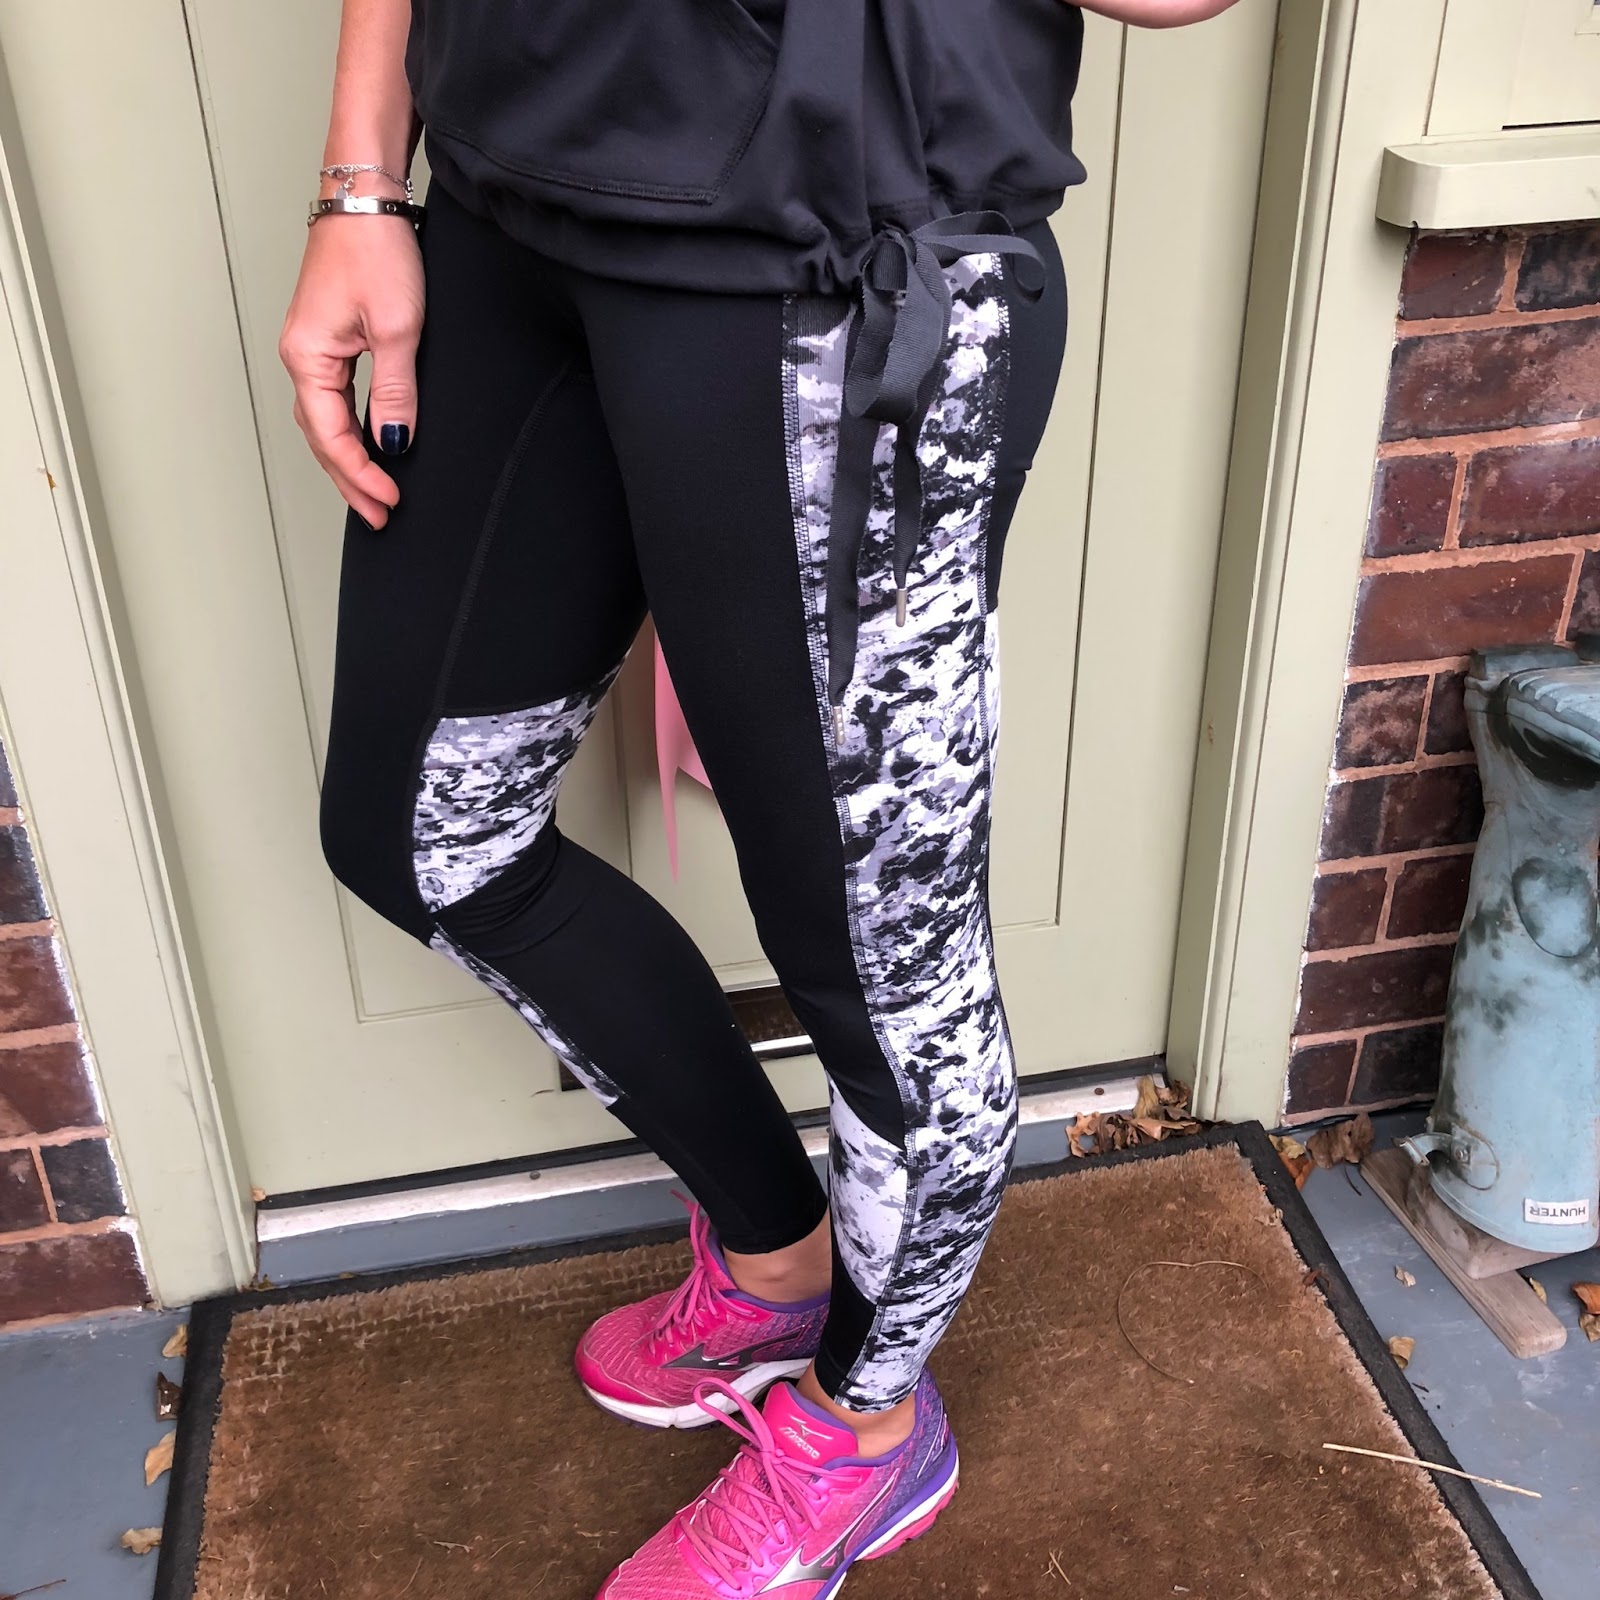 my midlife fashion, tesco f and f activewear clothing, tesco f and f clothing active soft touch hoodie, tesco f and f clothing active mesh insert t shirt, tesco f and f clothing active mottle print leggings